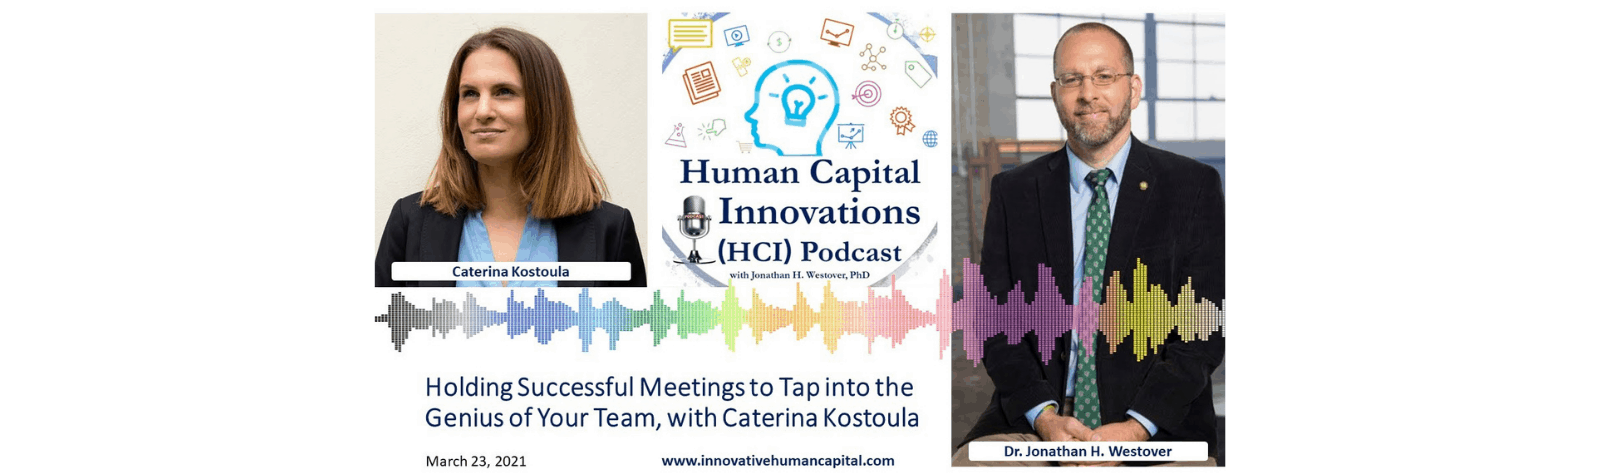 HCI Podcast – Holding Successful Meetings to Tap into the Genius of Your Team, with Caterina Kostoula